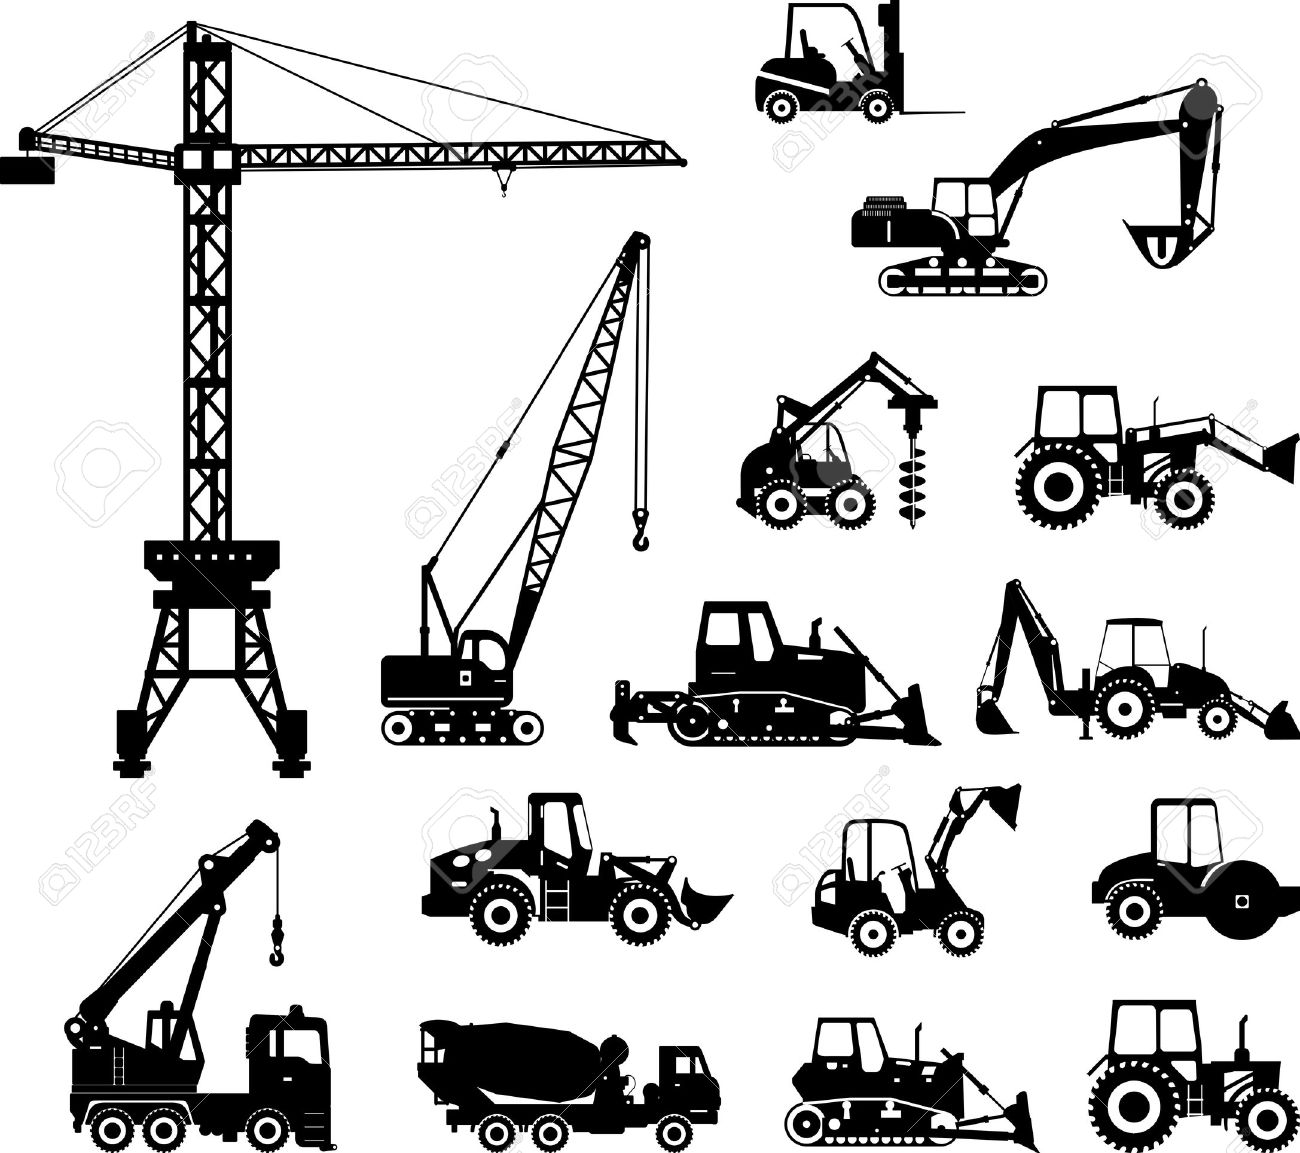 illustration of backhoe loaders heavy equipment and machinery clipart.